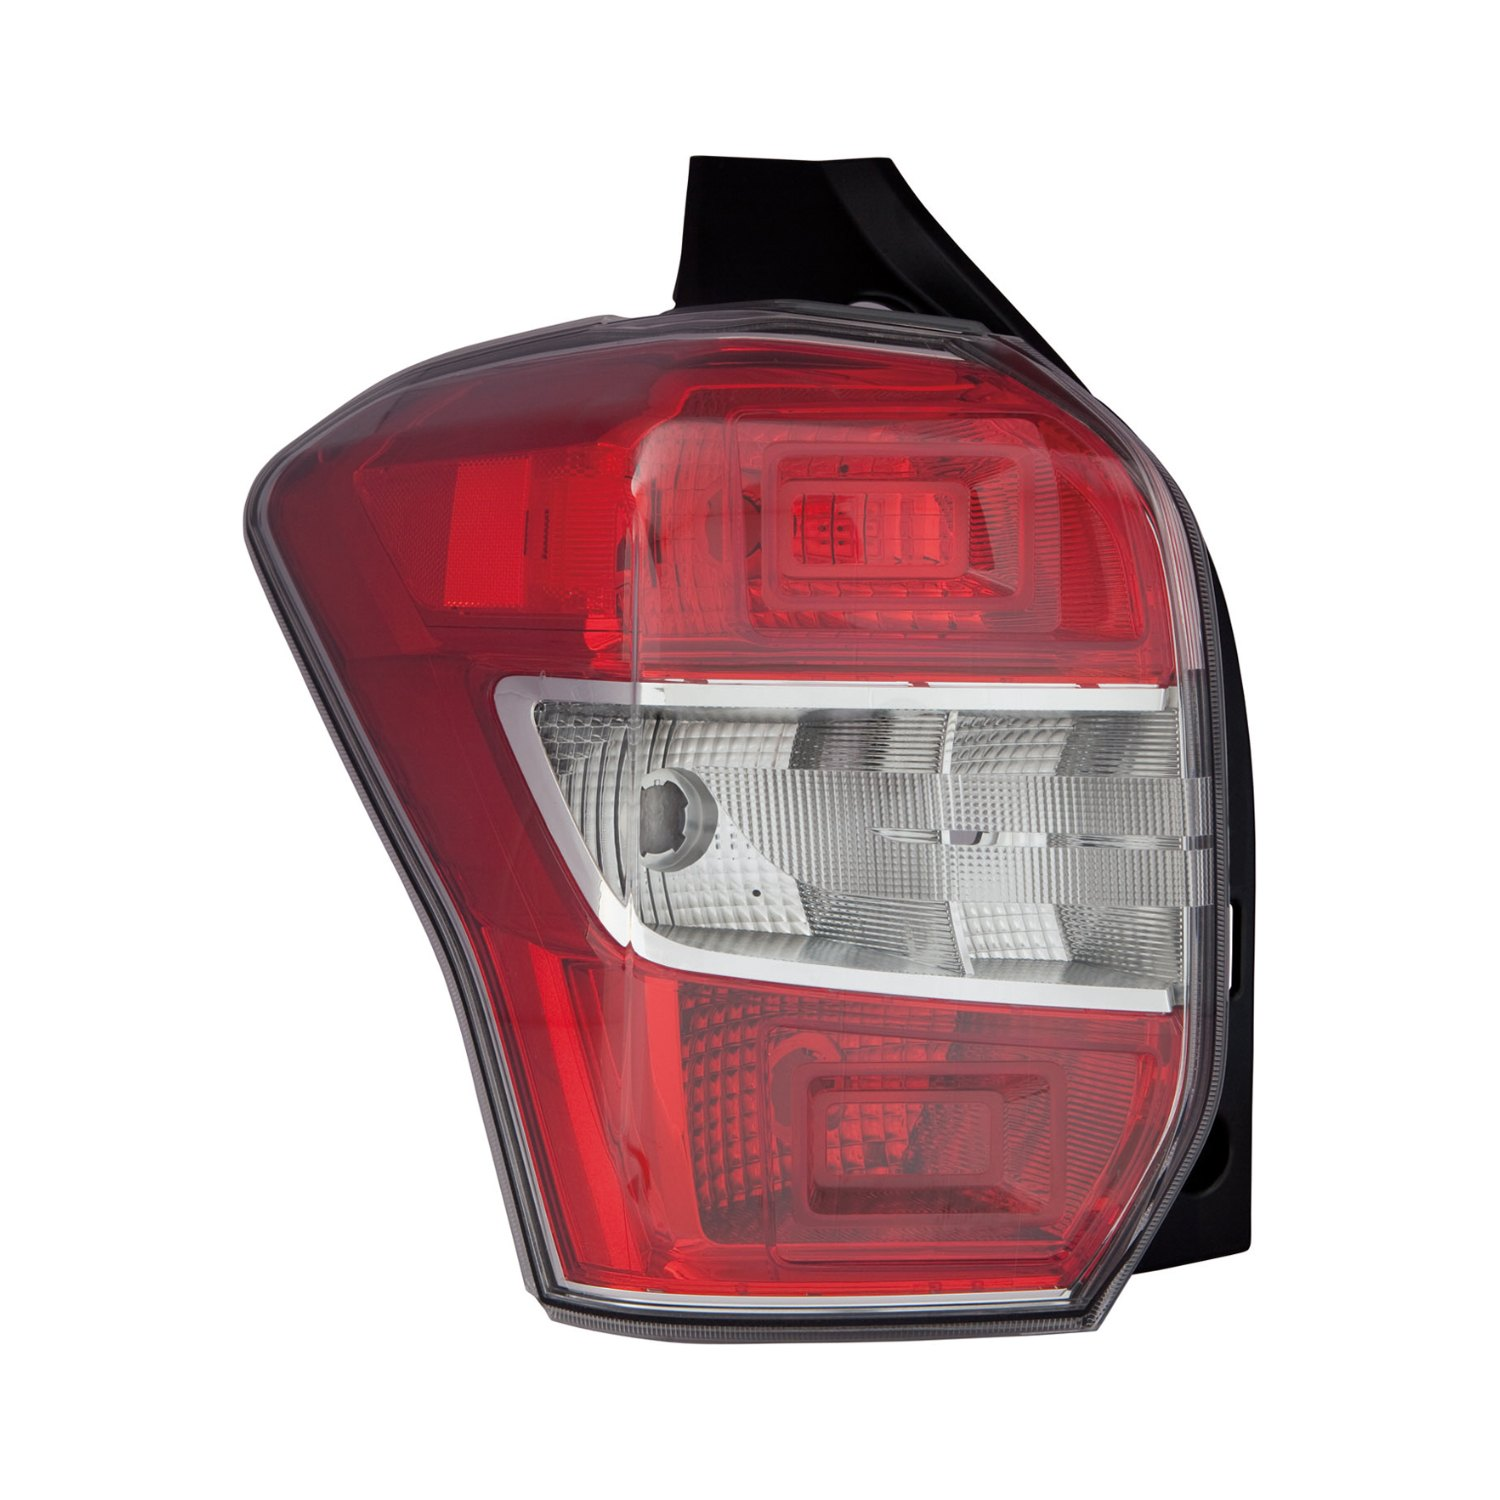 replacement driver side tail light replacement-clear & red lens